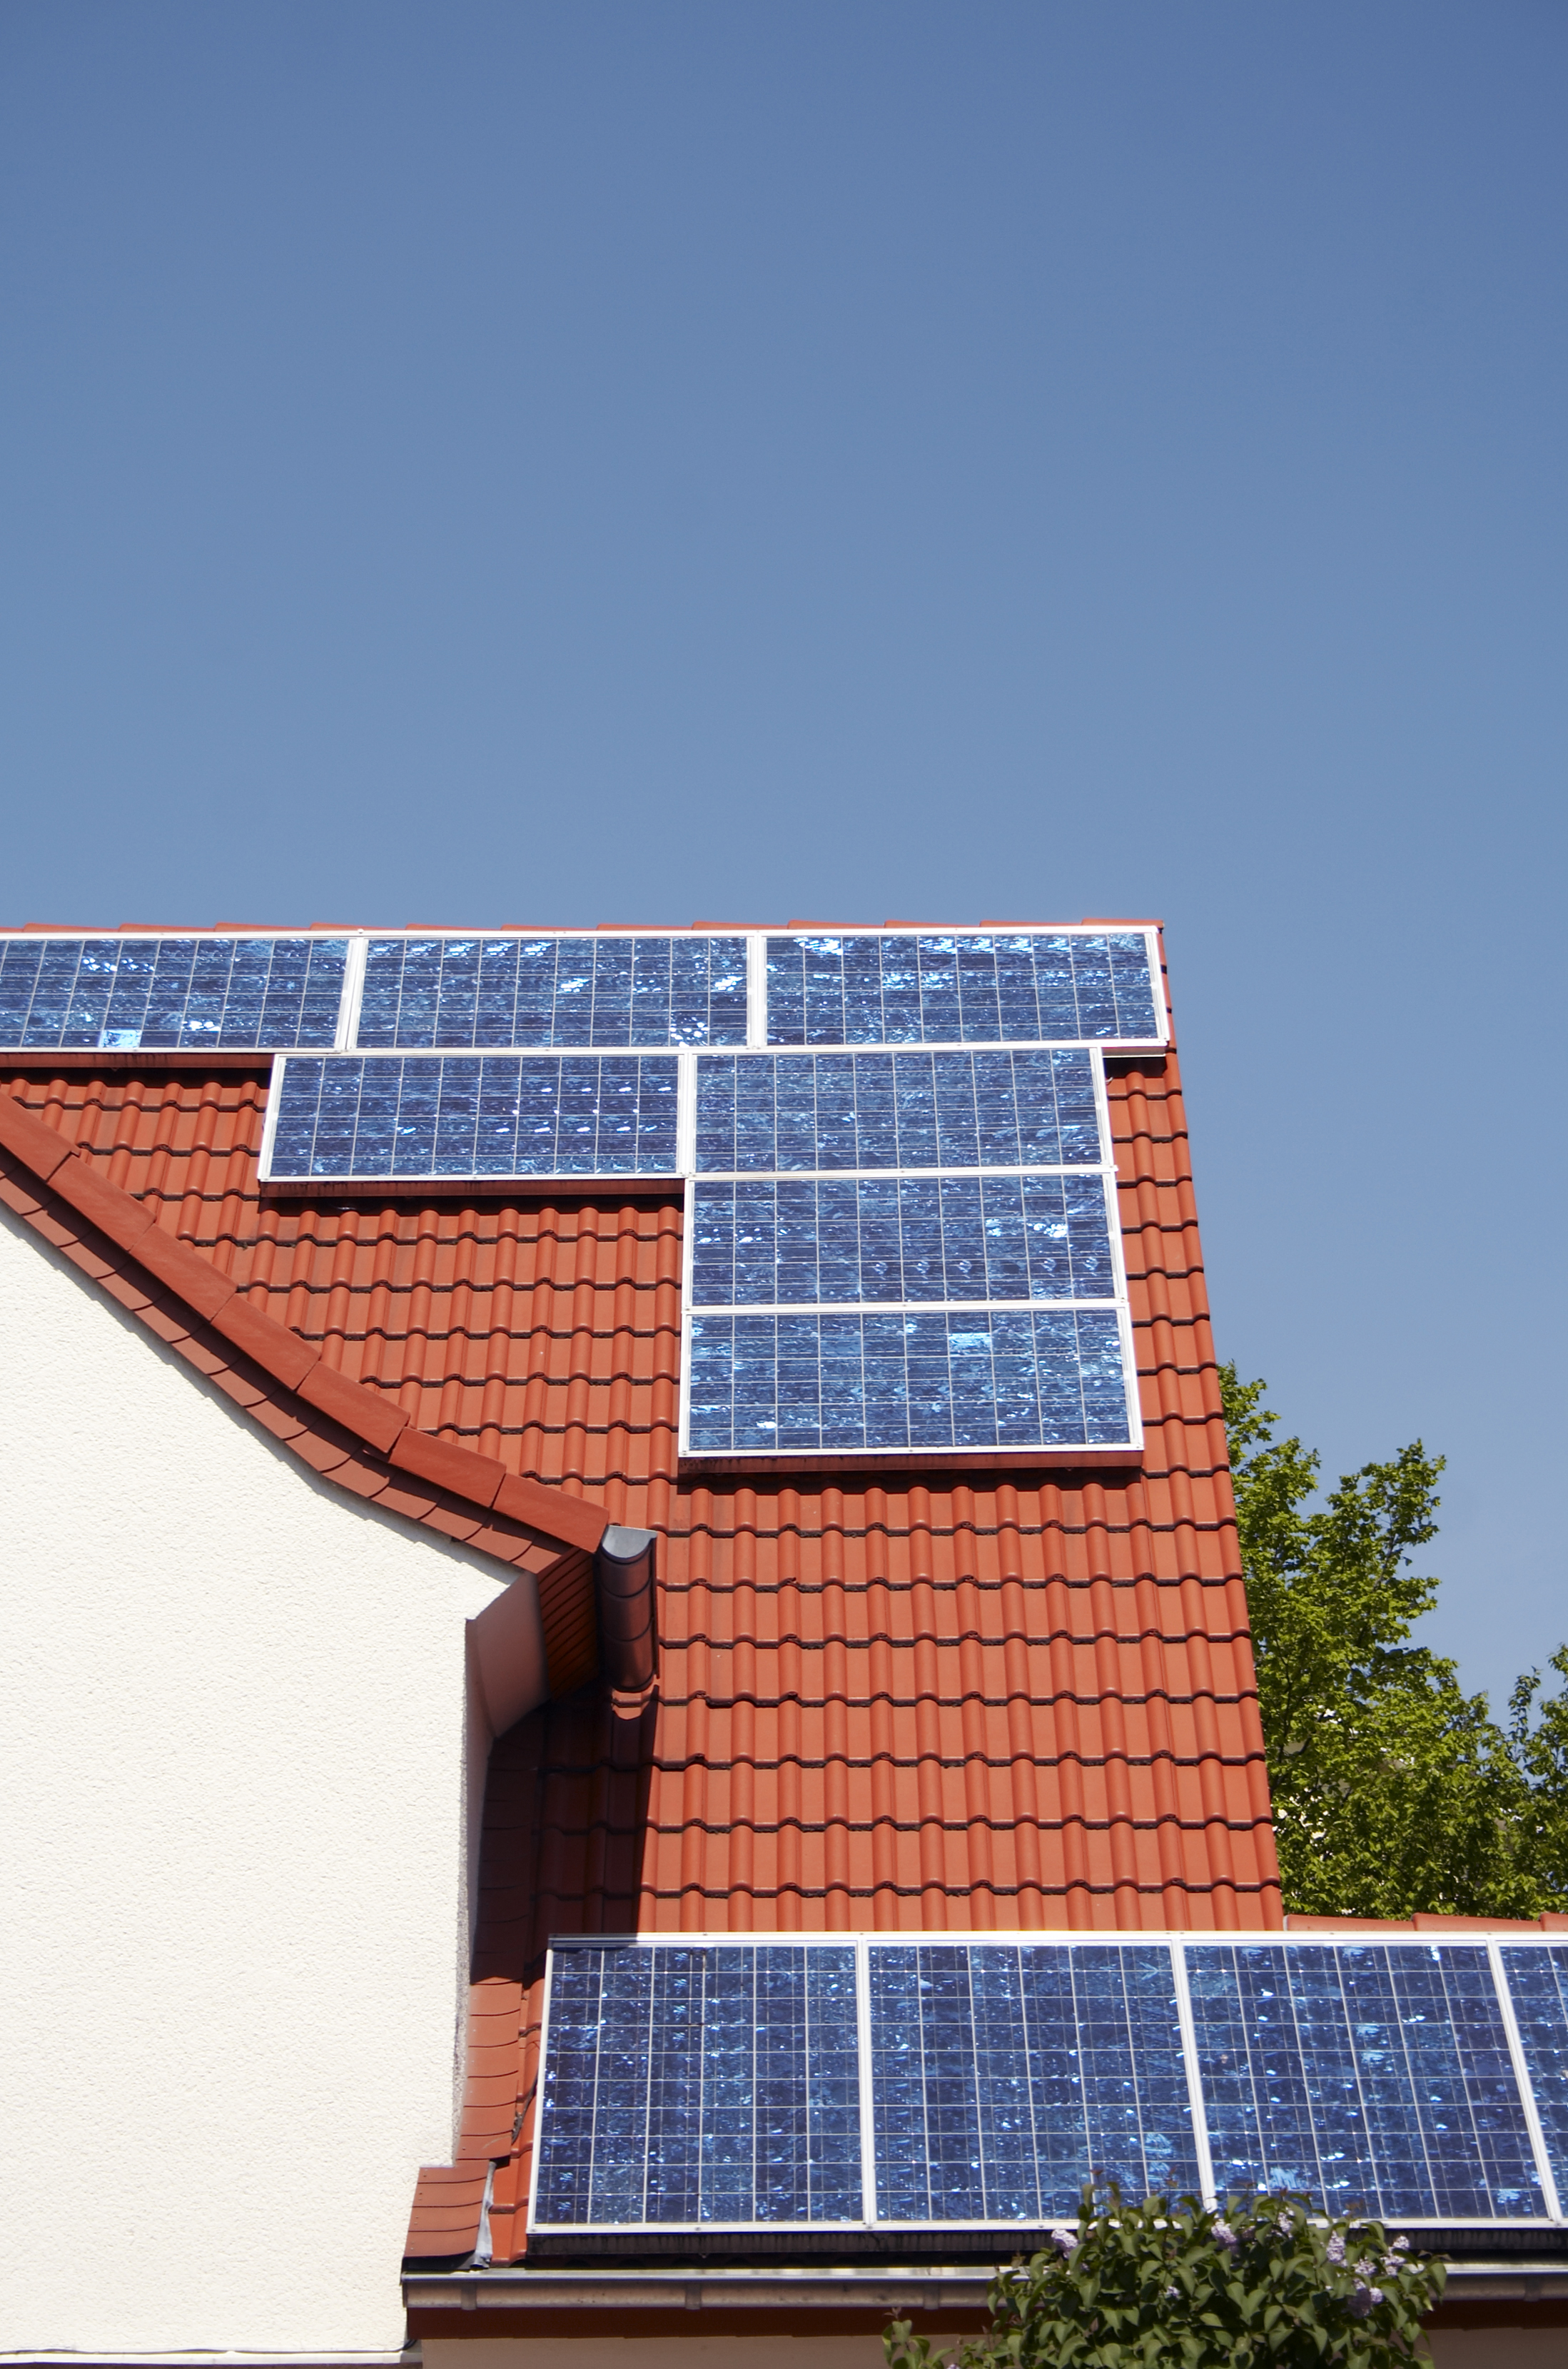 The price of solar panel installations has dropped in Spain and demand has soared.